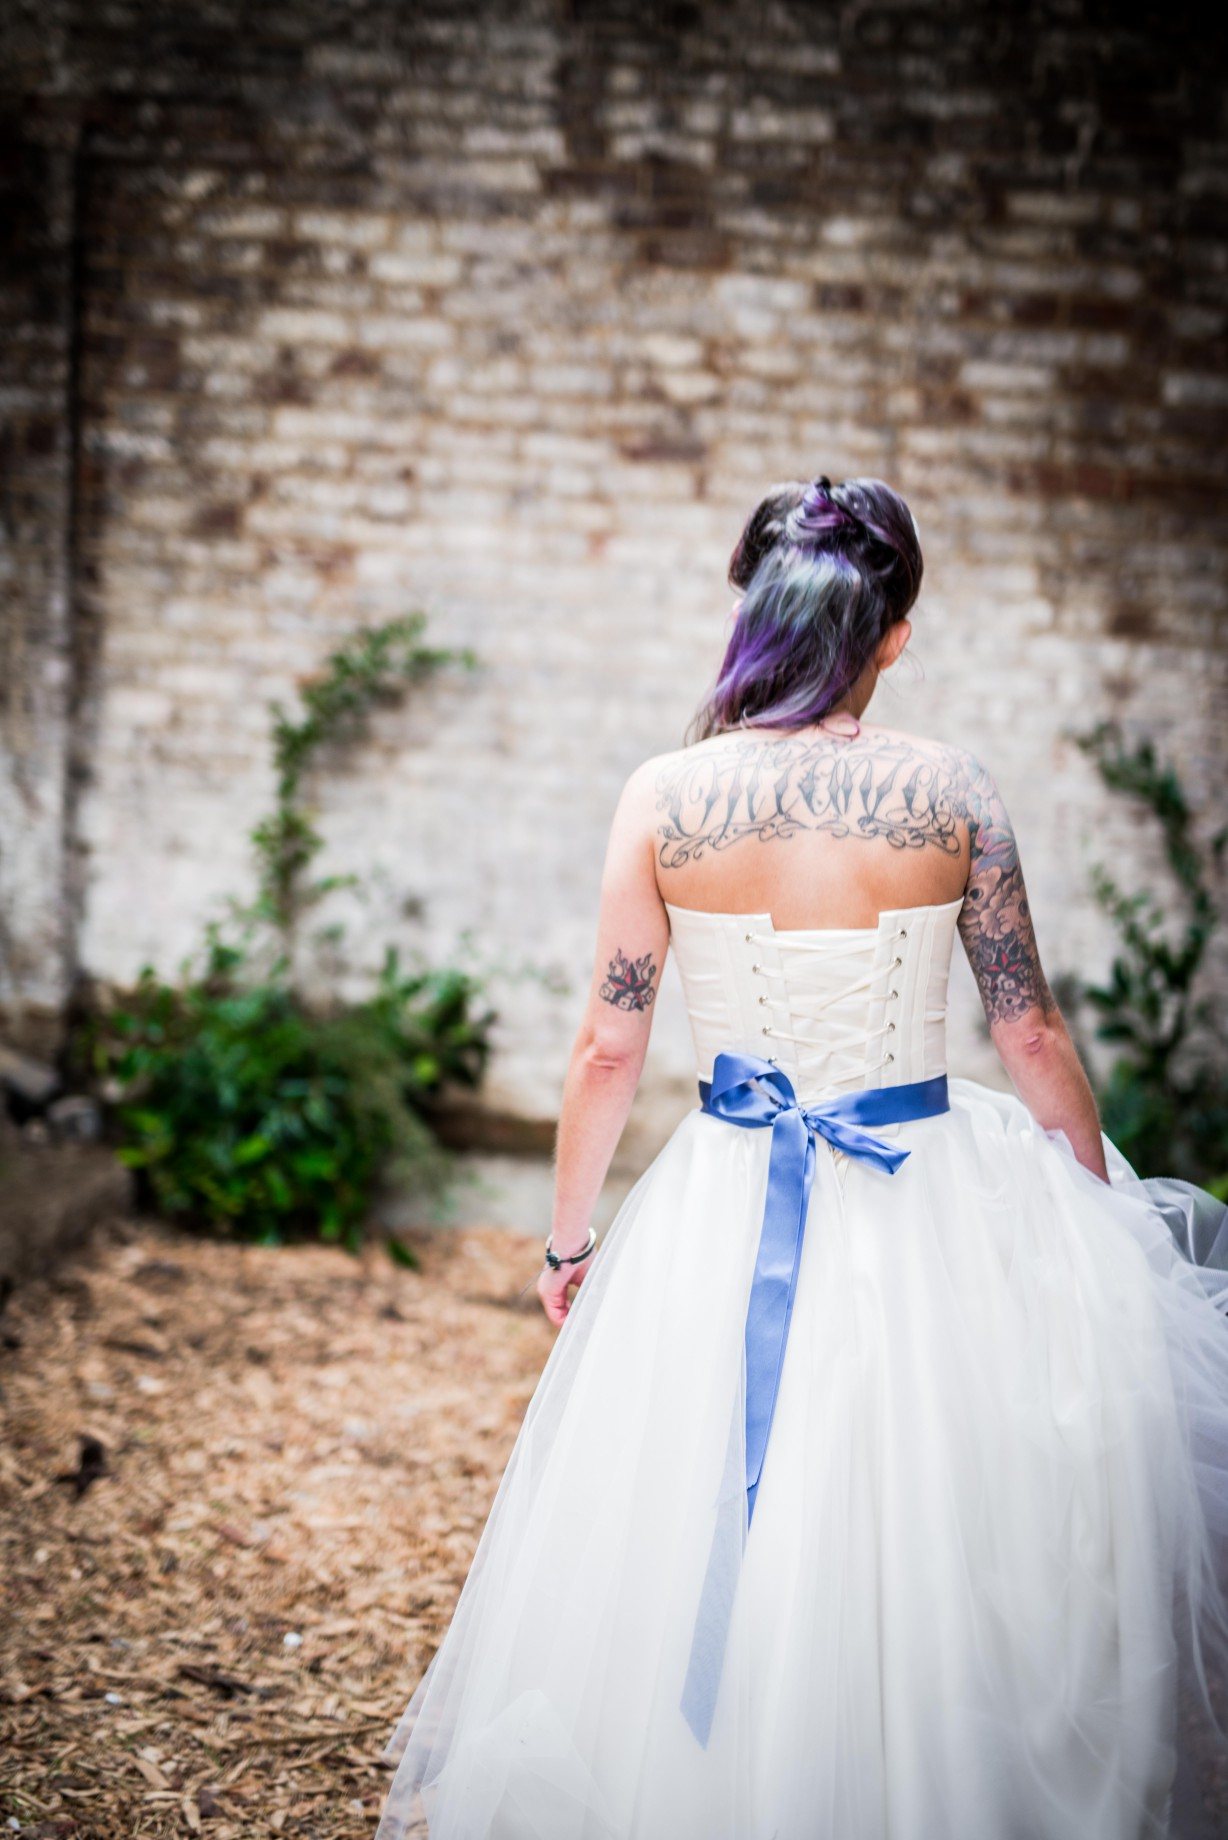 Peacock barns - alternative unconventional wedding photoshoot - rustic decadent - bride dress